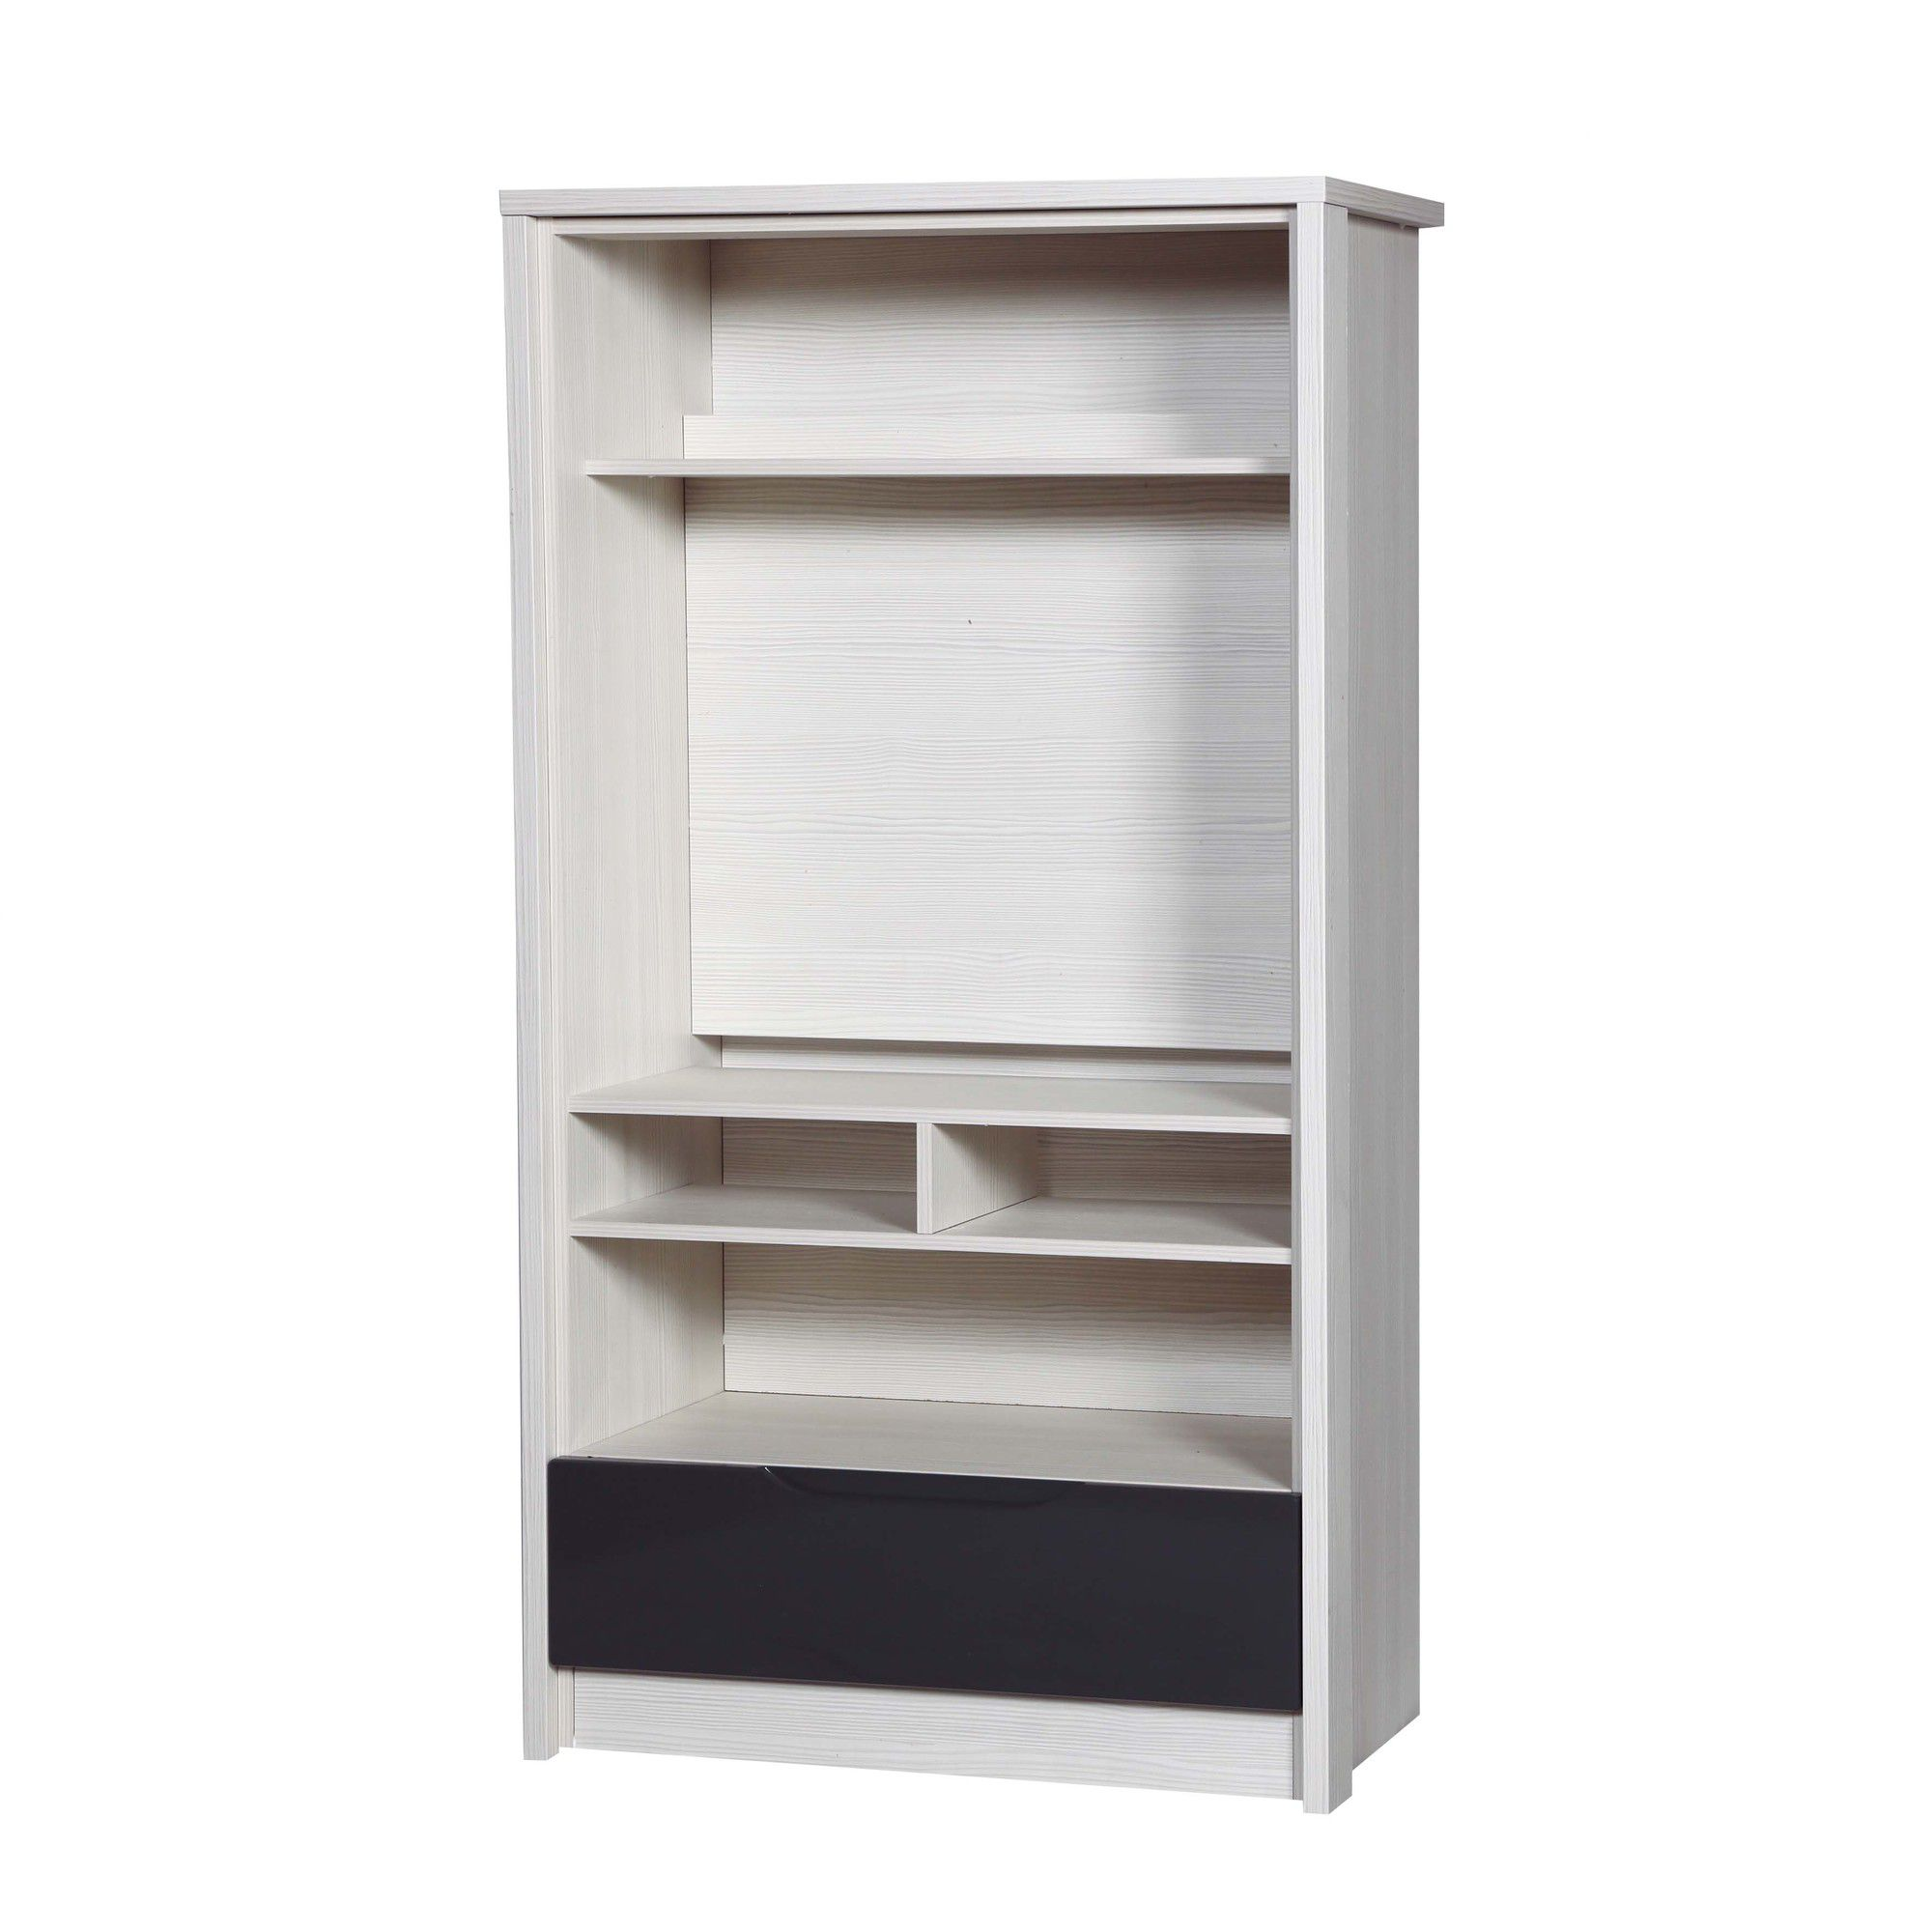 Alto Furniture Avola TV Cabinet - White Avola Carcass With Grey Gloss at Tesco Direct